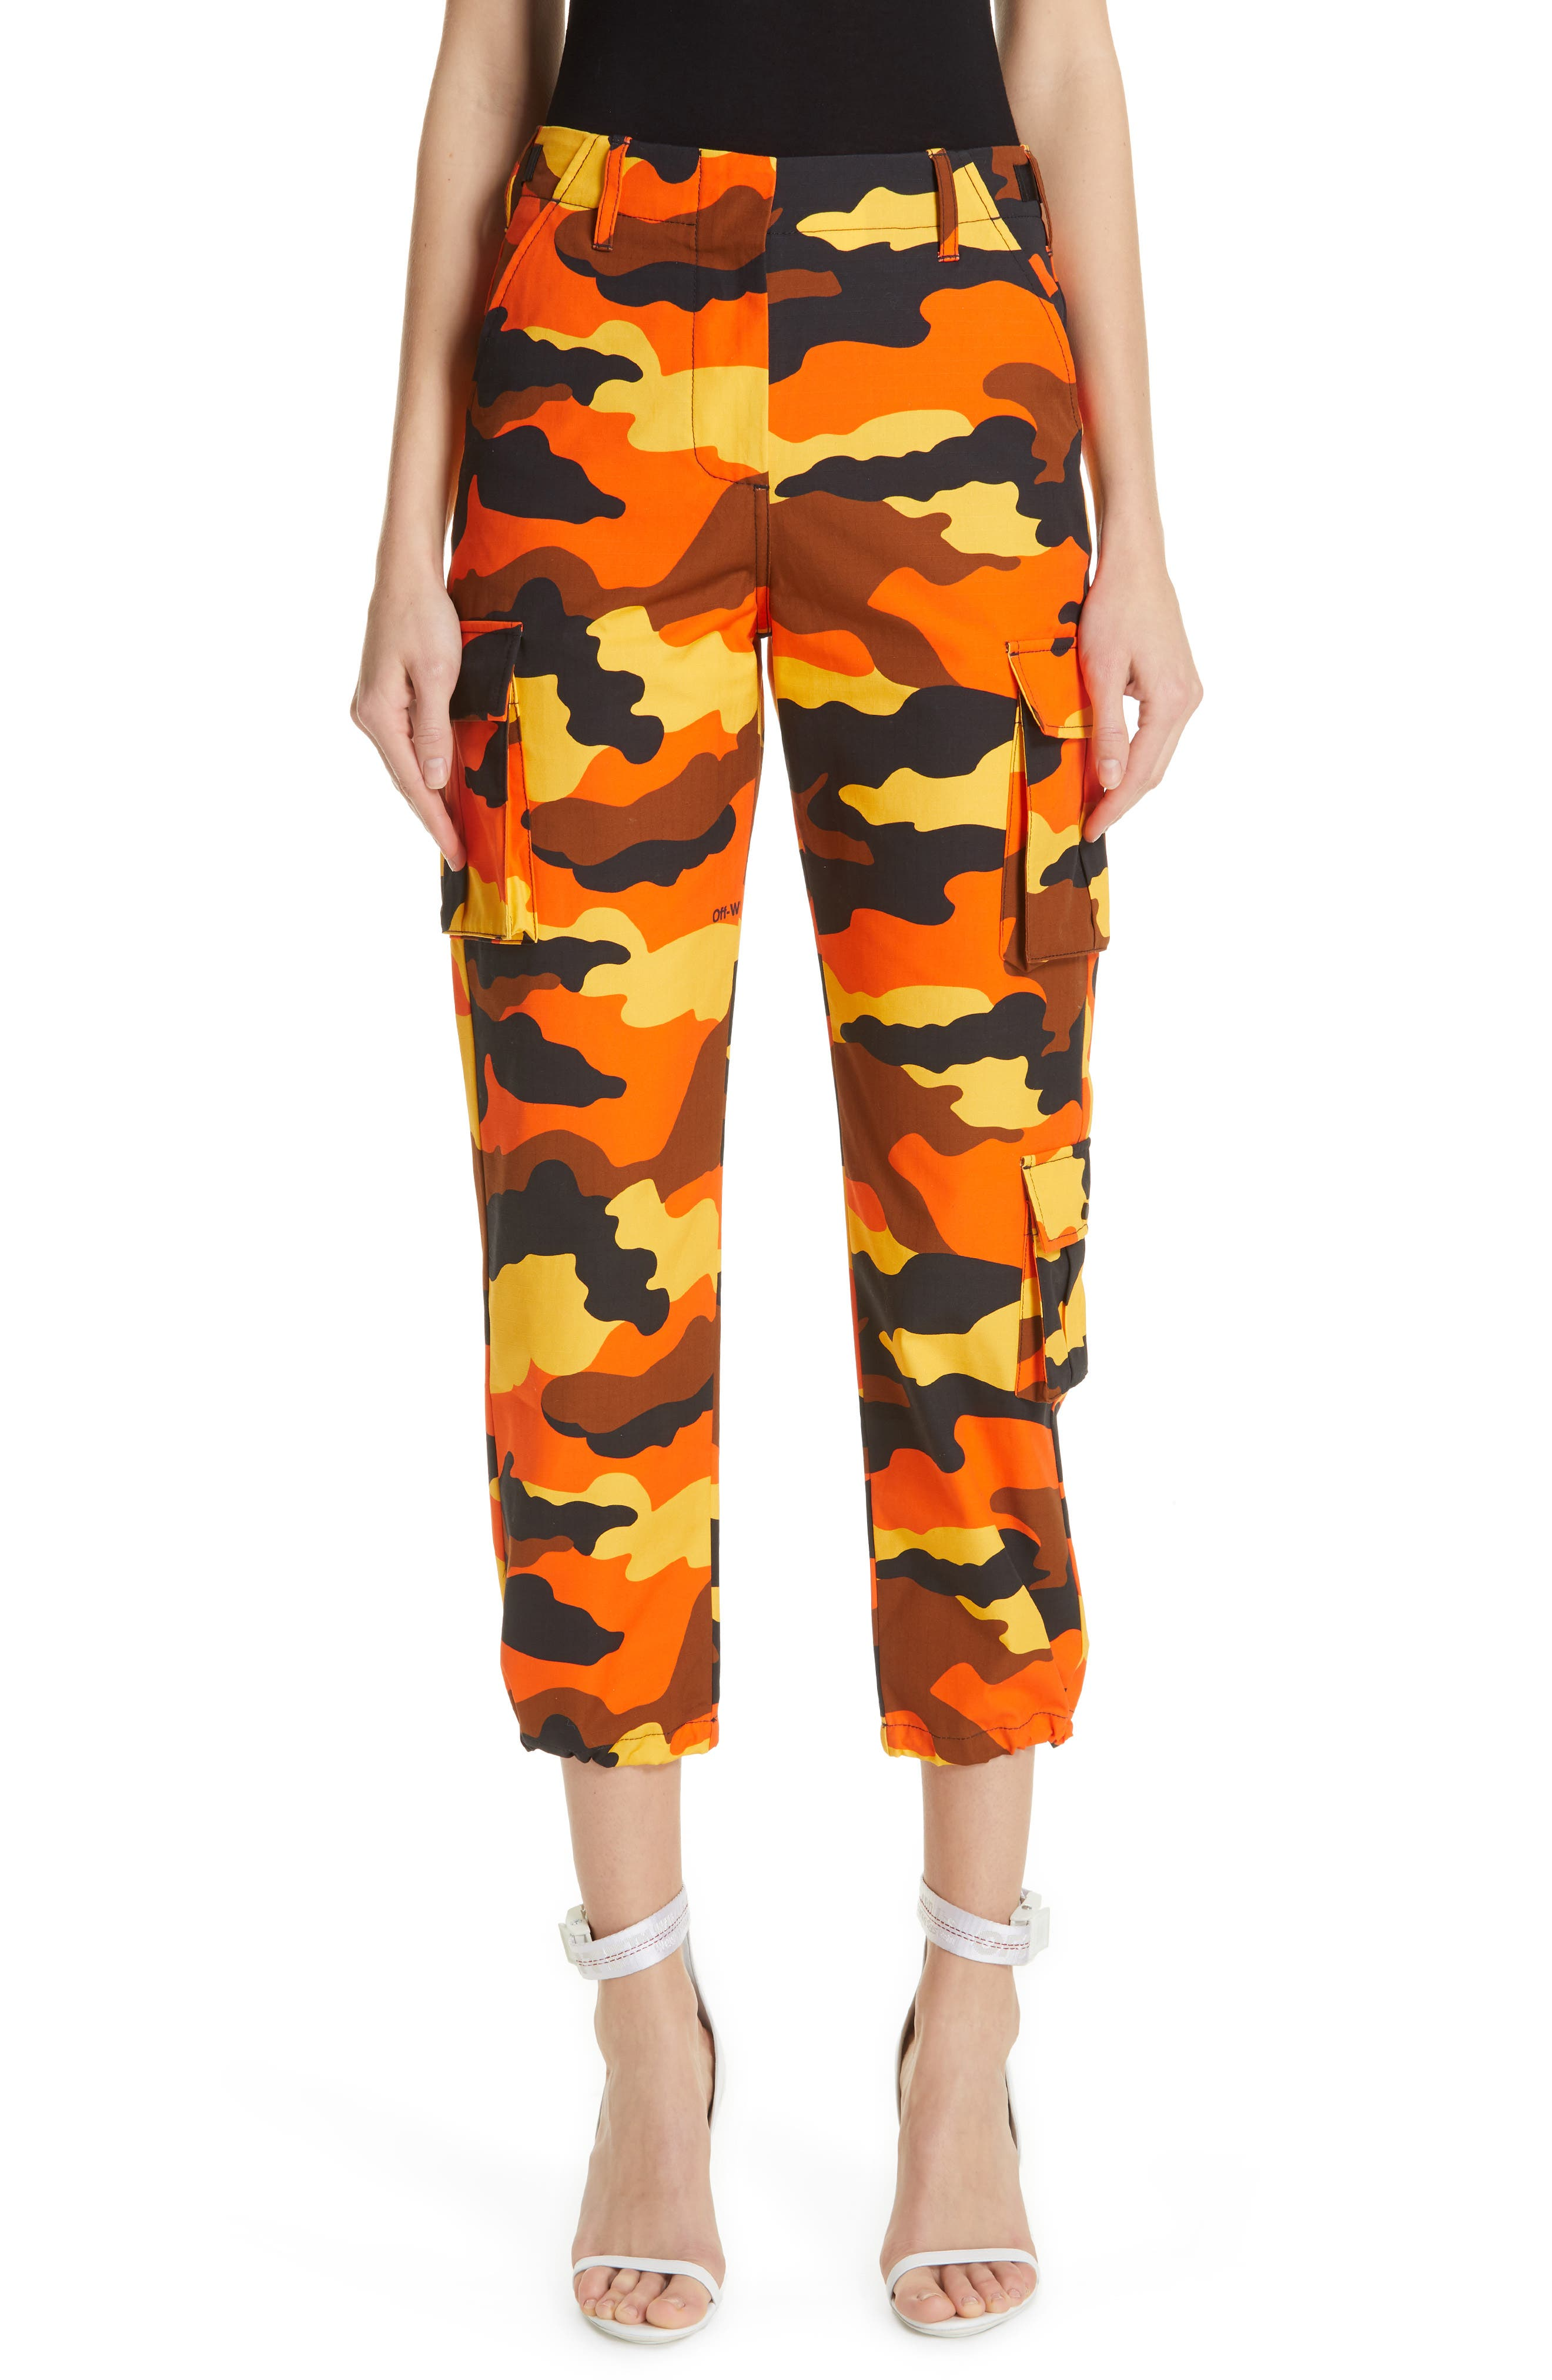 OFF-WHITE Camo Cargo Pants, Main, color, ALL OVER